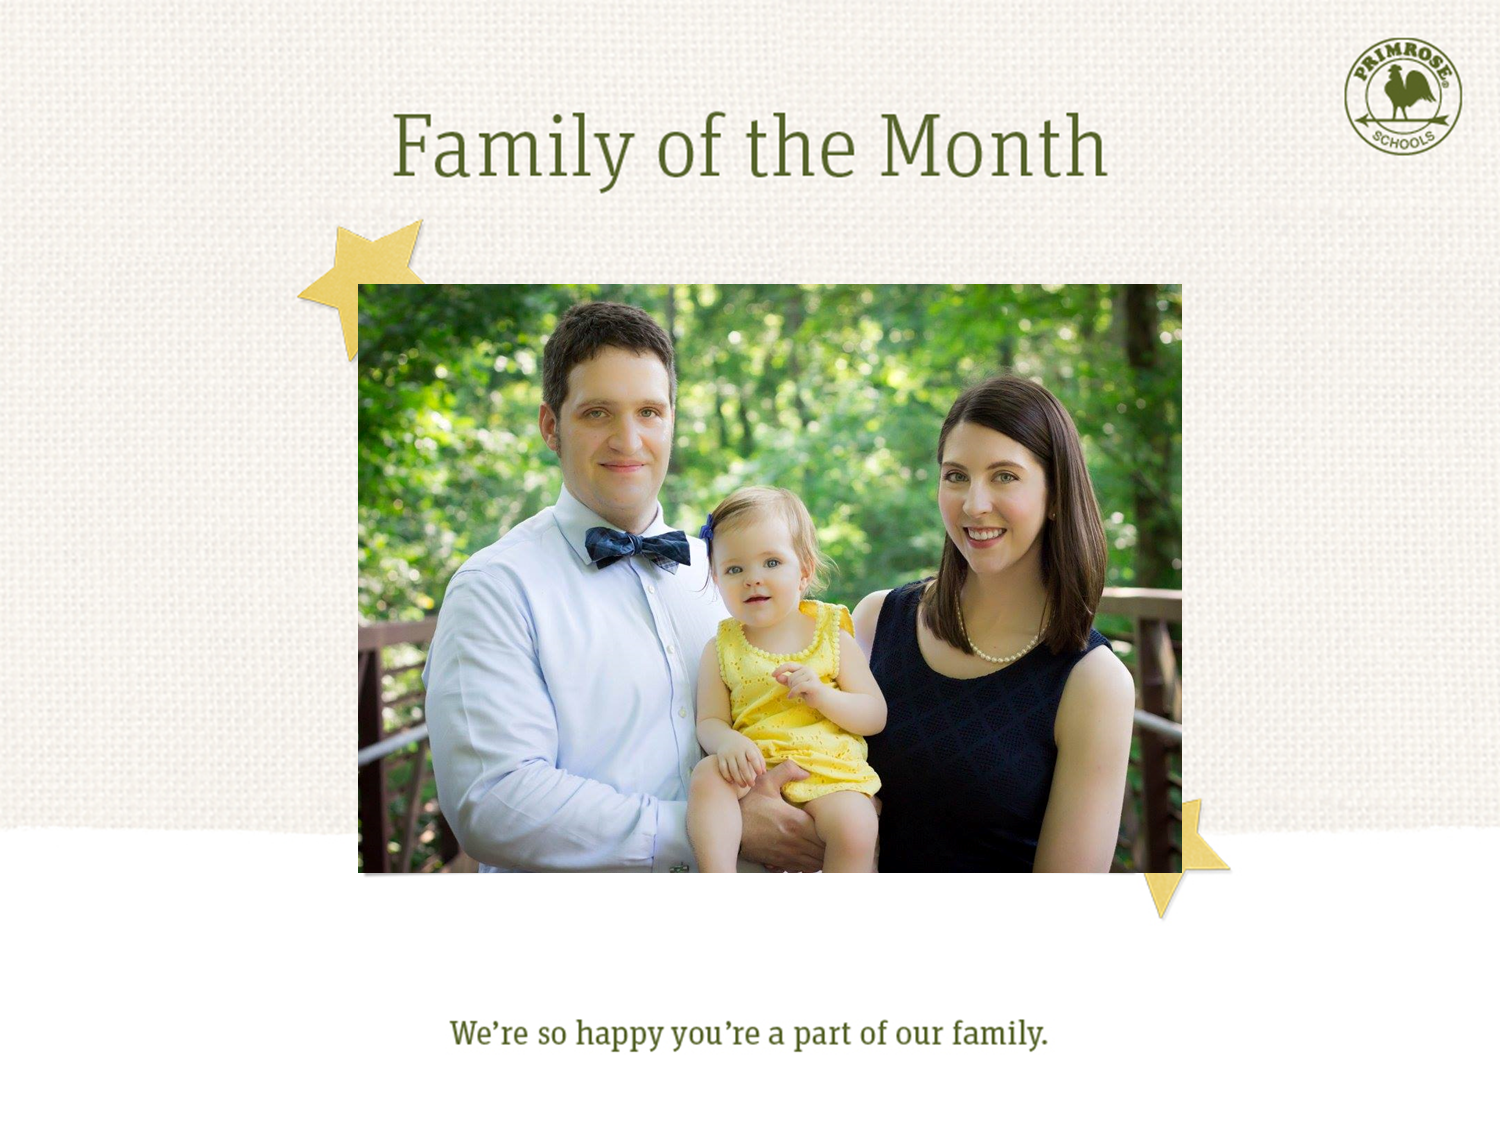 The DeNeve family, family of the month